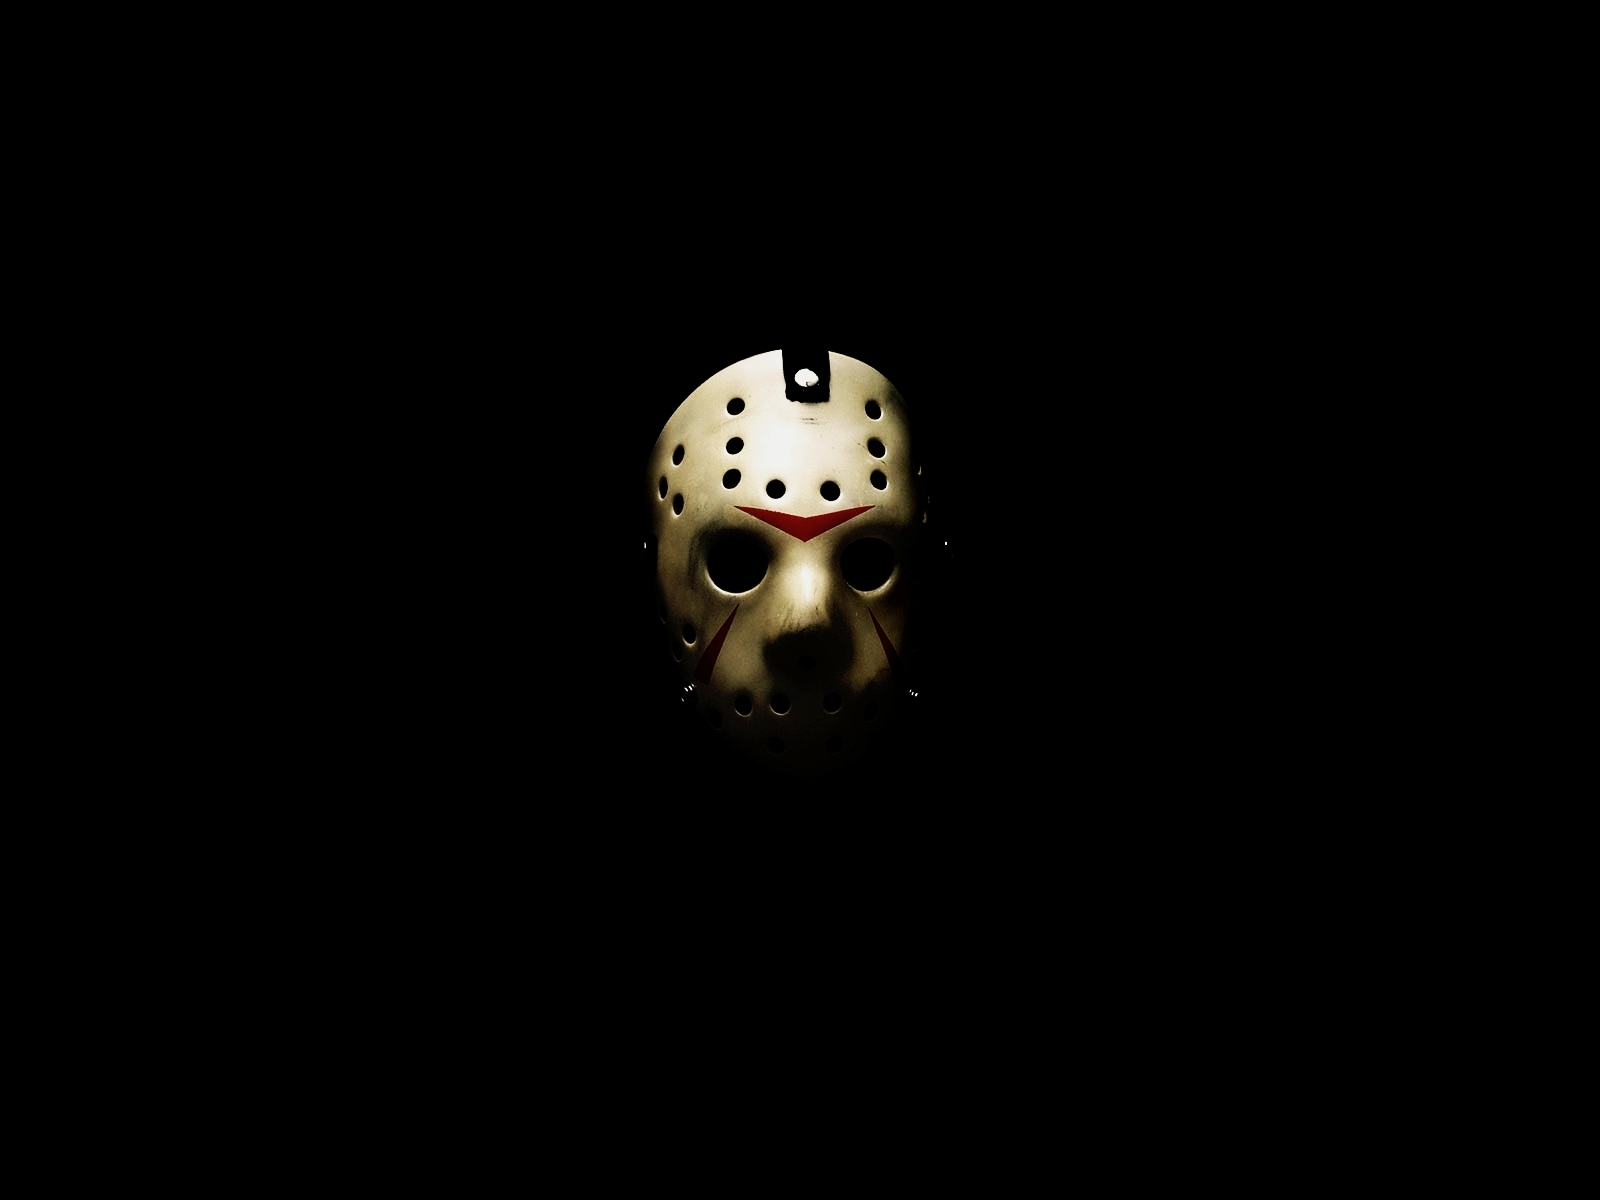 64 Jason Voorhees Wallpaper On Wallpapersafari